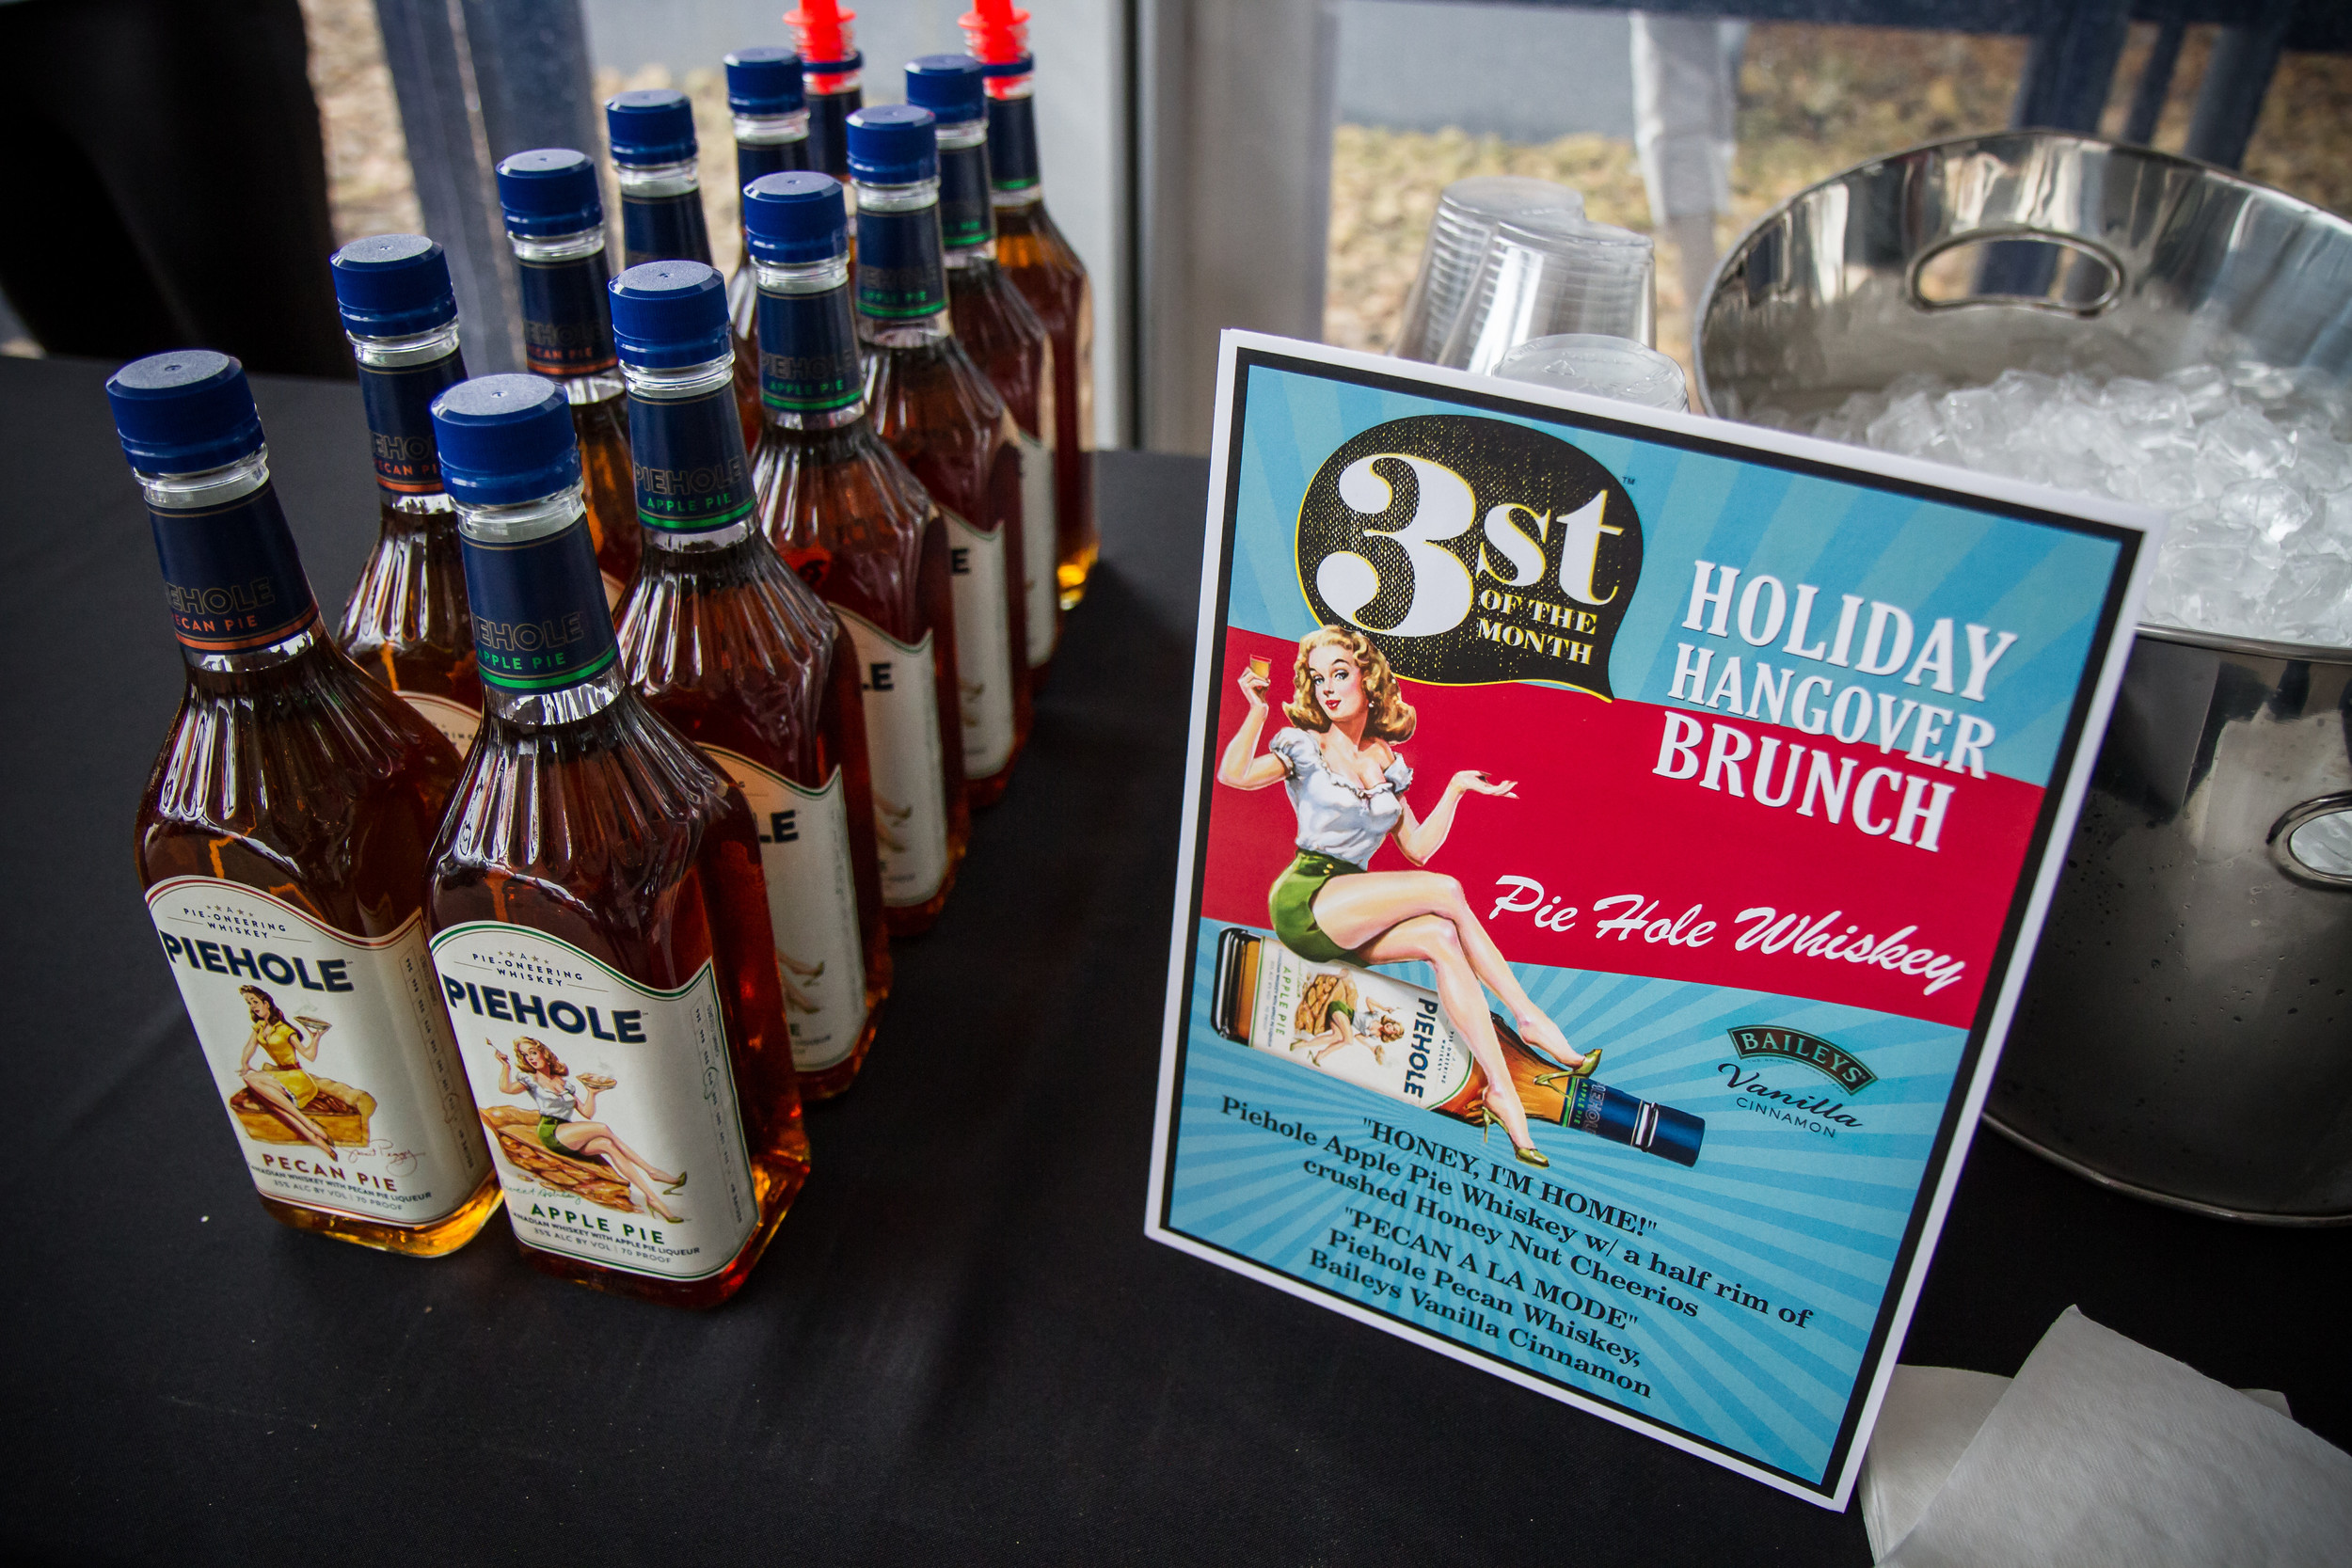 0682-3st Of The Month_Holiday Hangover Brunch.jpg